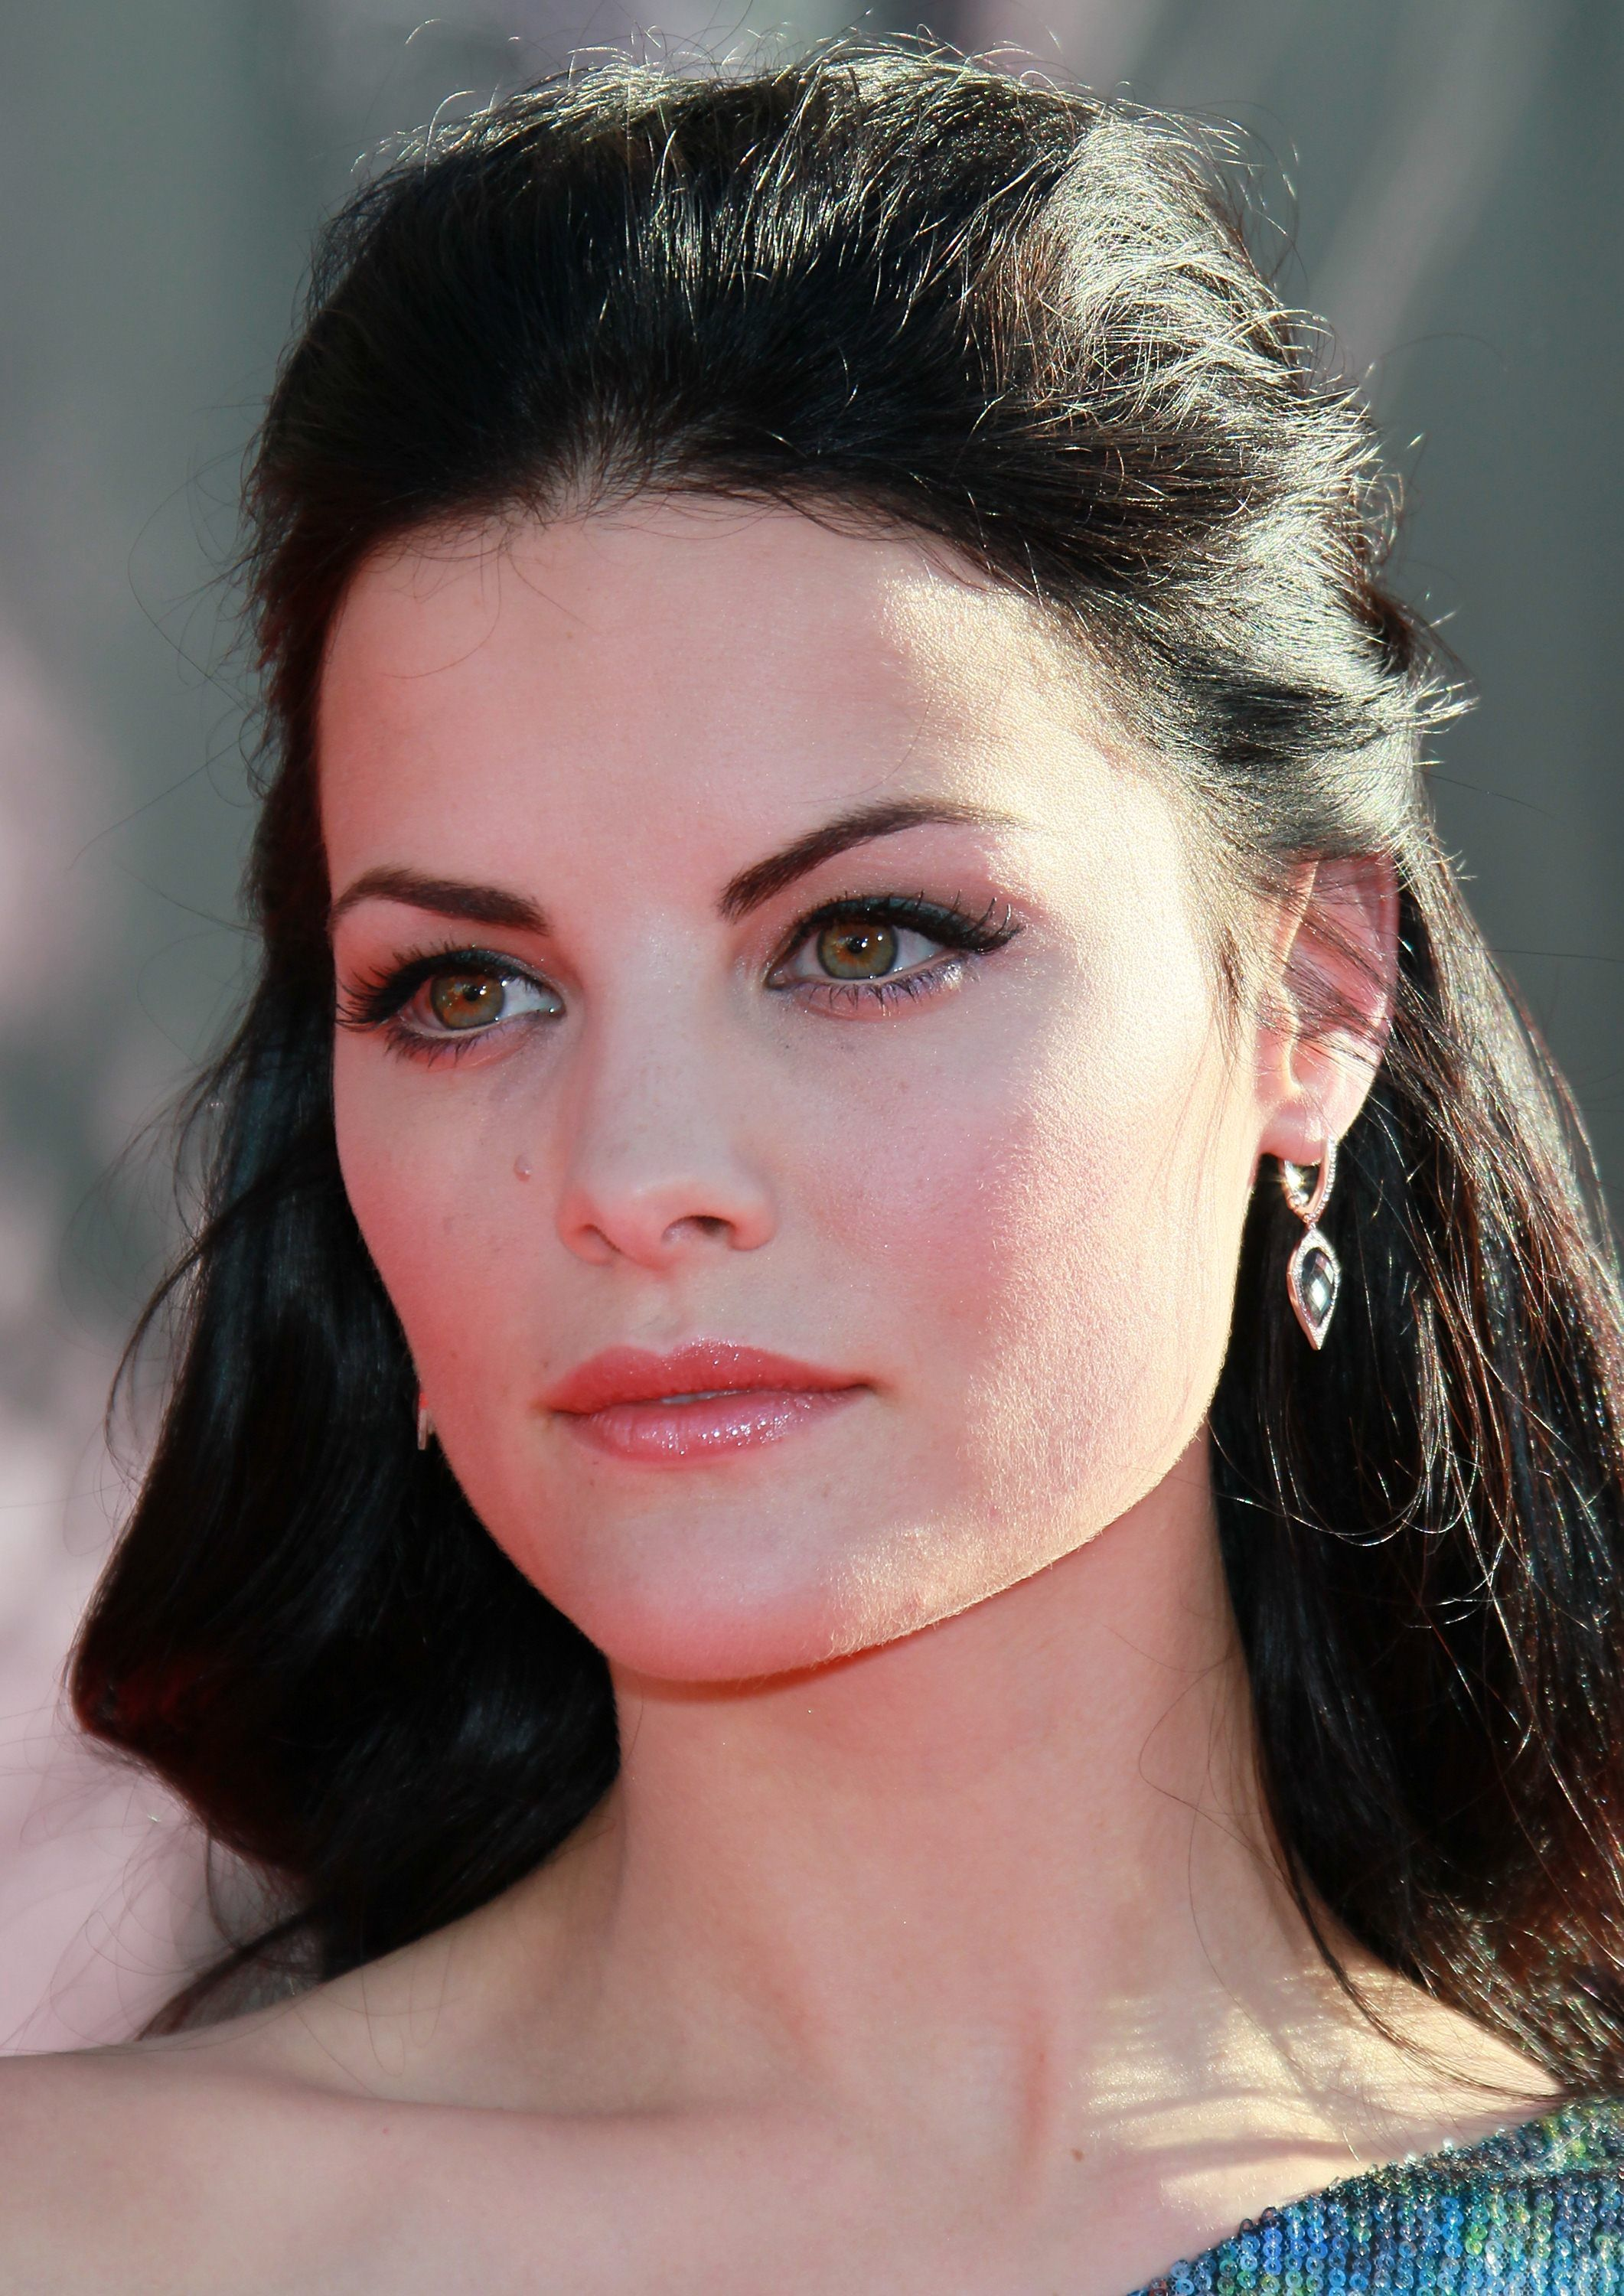 jaimie alexander gotcelebjaimie alexander gif, jaimie alexander listal, jaimie alexander gallery, jaimie alexander wonder woman, jaimie alexander fan, jaimie alexander thor ragnarok, jaimie alexander vk, jaimie alexander gif tumblr, jaimie alexander hairstyle, jaimie alexander muscle, jaimie alexander 2017, jaimie alexander fan site, jaimie alexander png, jaimie alexander armpit, jaimie alexander instagram, jaimie alexander shield, jaimie alexander icon, jaimie alexander new boyfriend, jaimie alexander gotceleb, jaimie alexander is dating